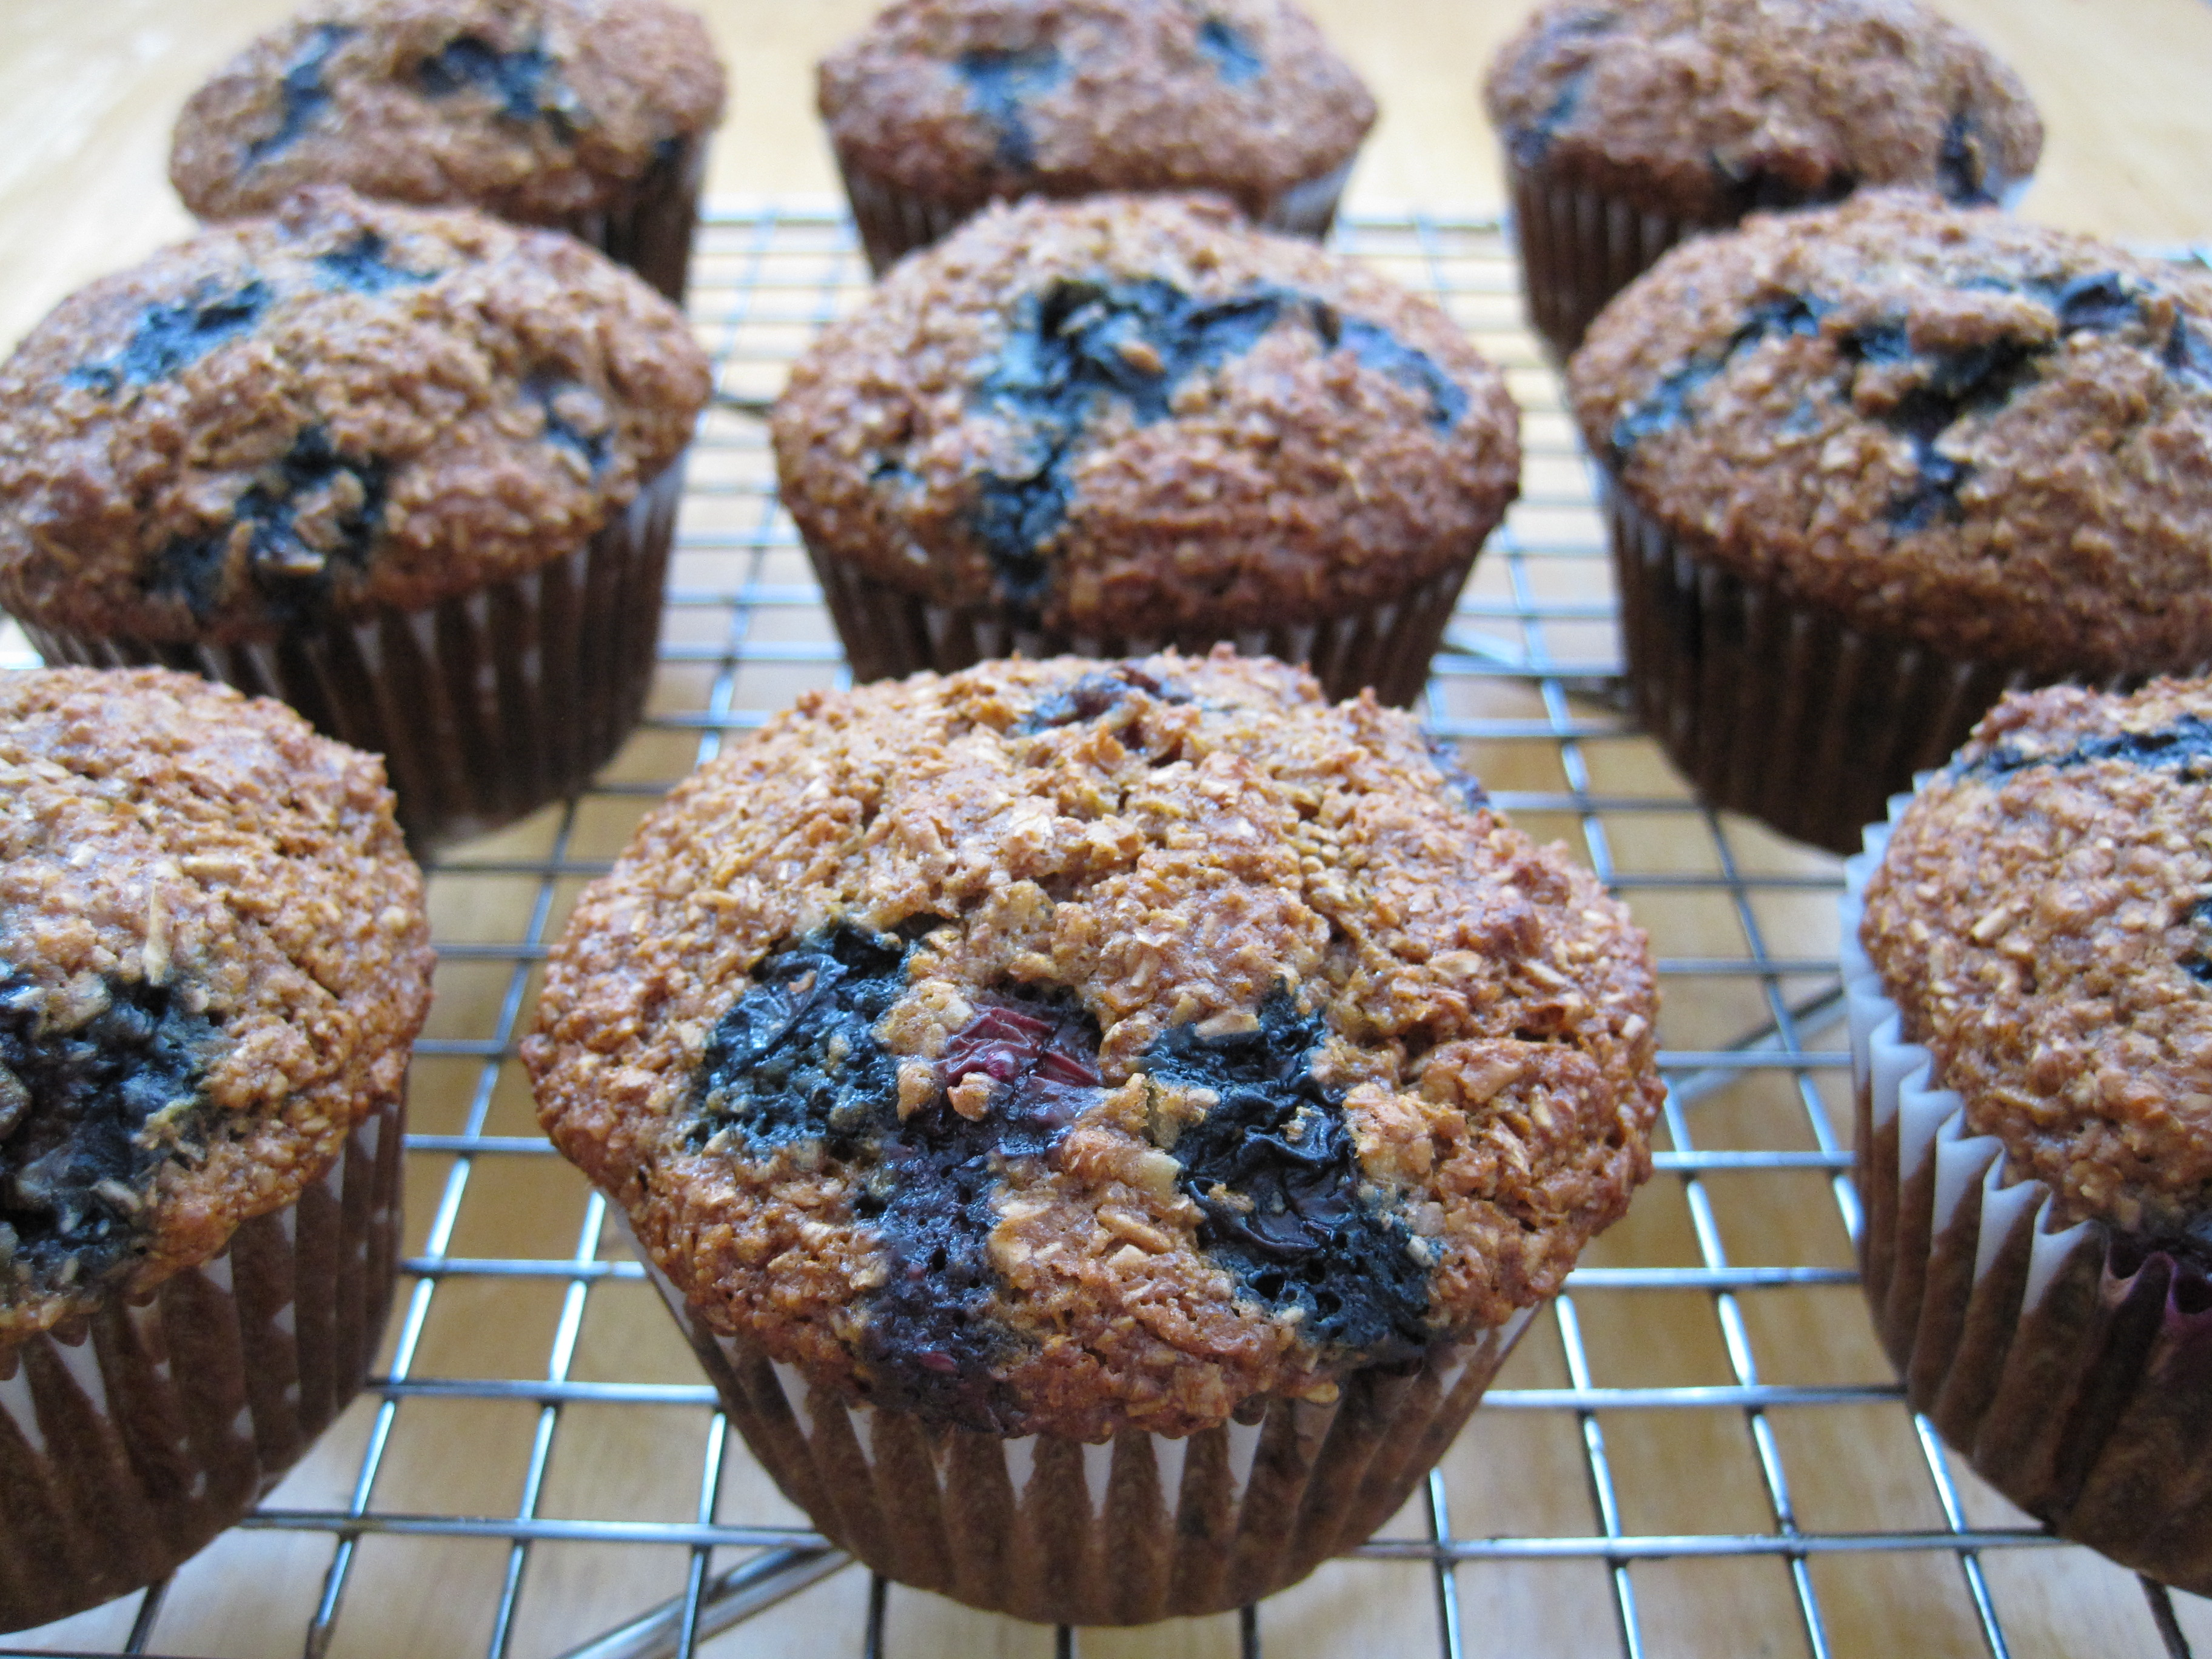 Best Blueberry or Cranberry Bran Muffins | Cooking with Alison